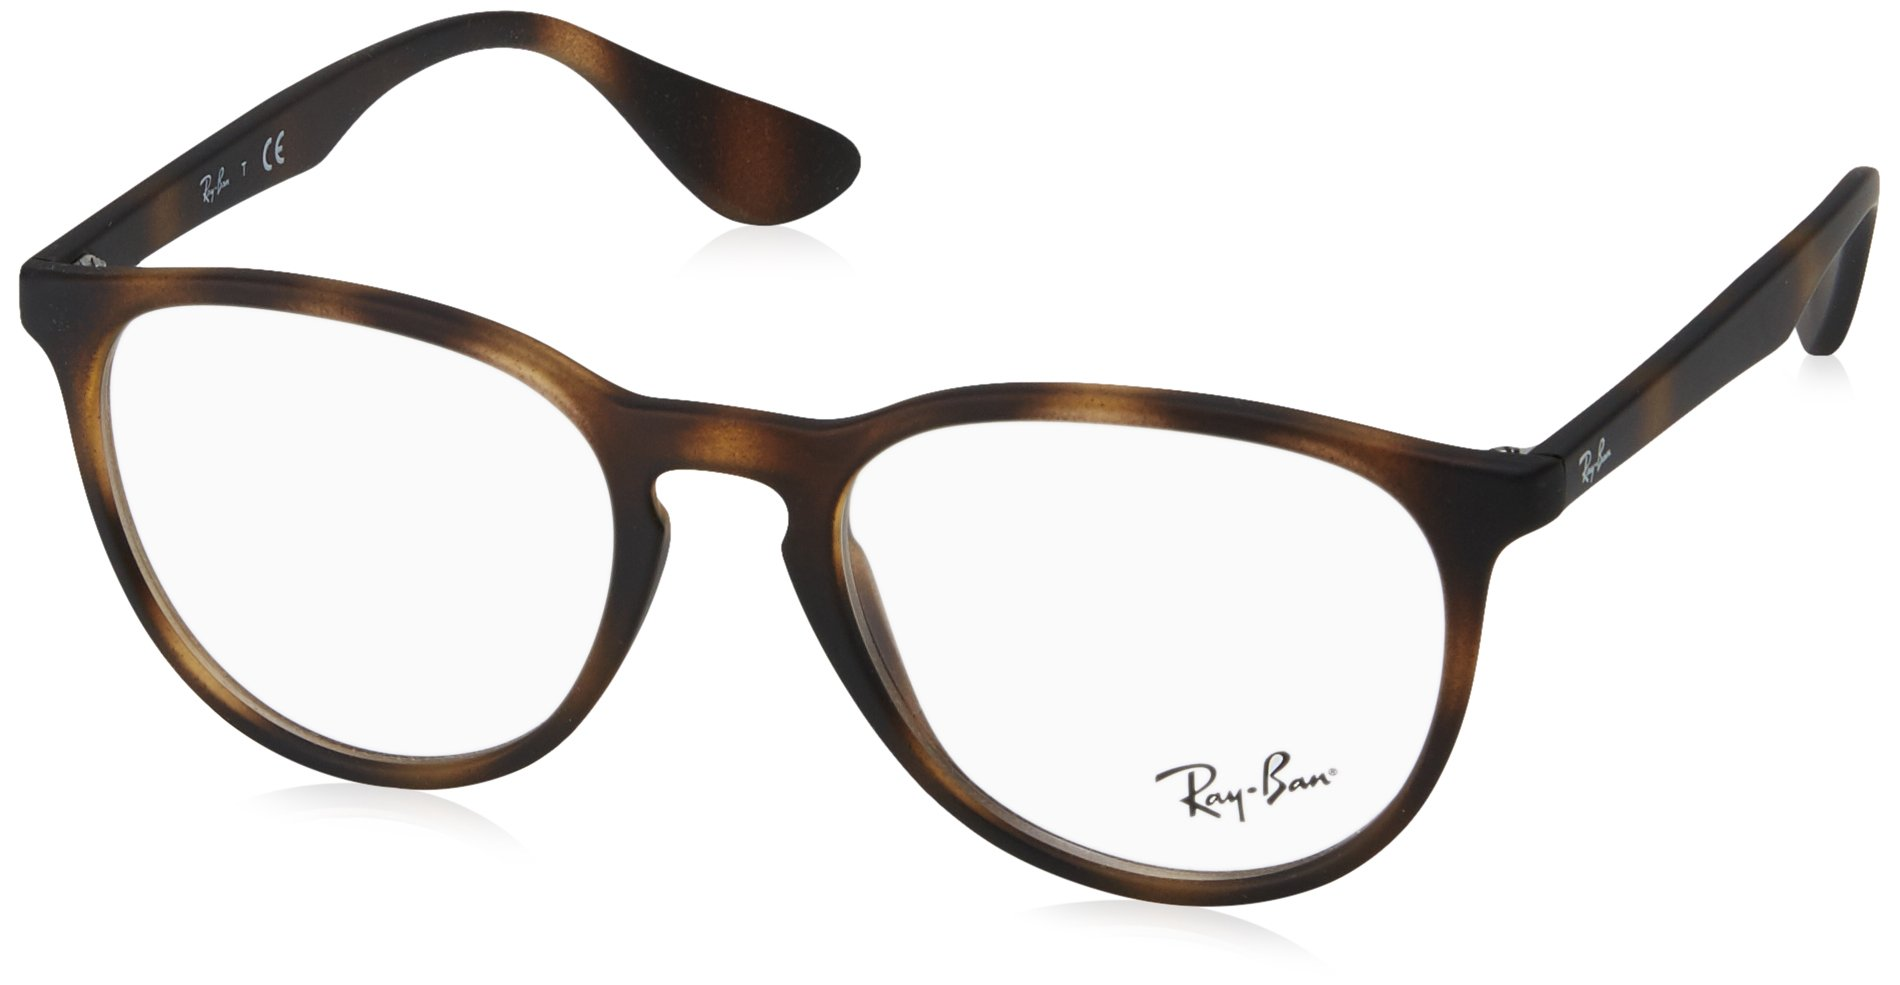 Ray-Ban Women's RX7046 Eyeglasses Grey Gradient Rubber 51mm by Ray-Ban